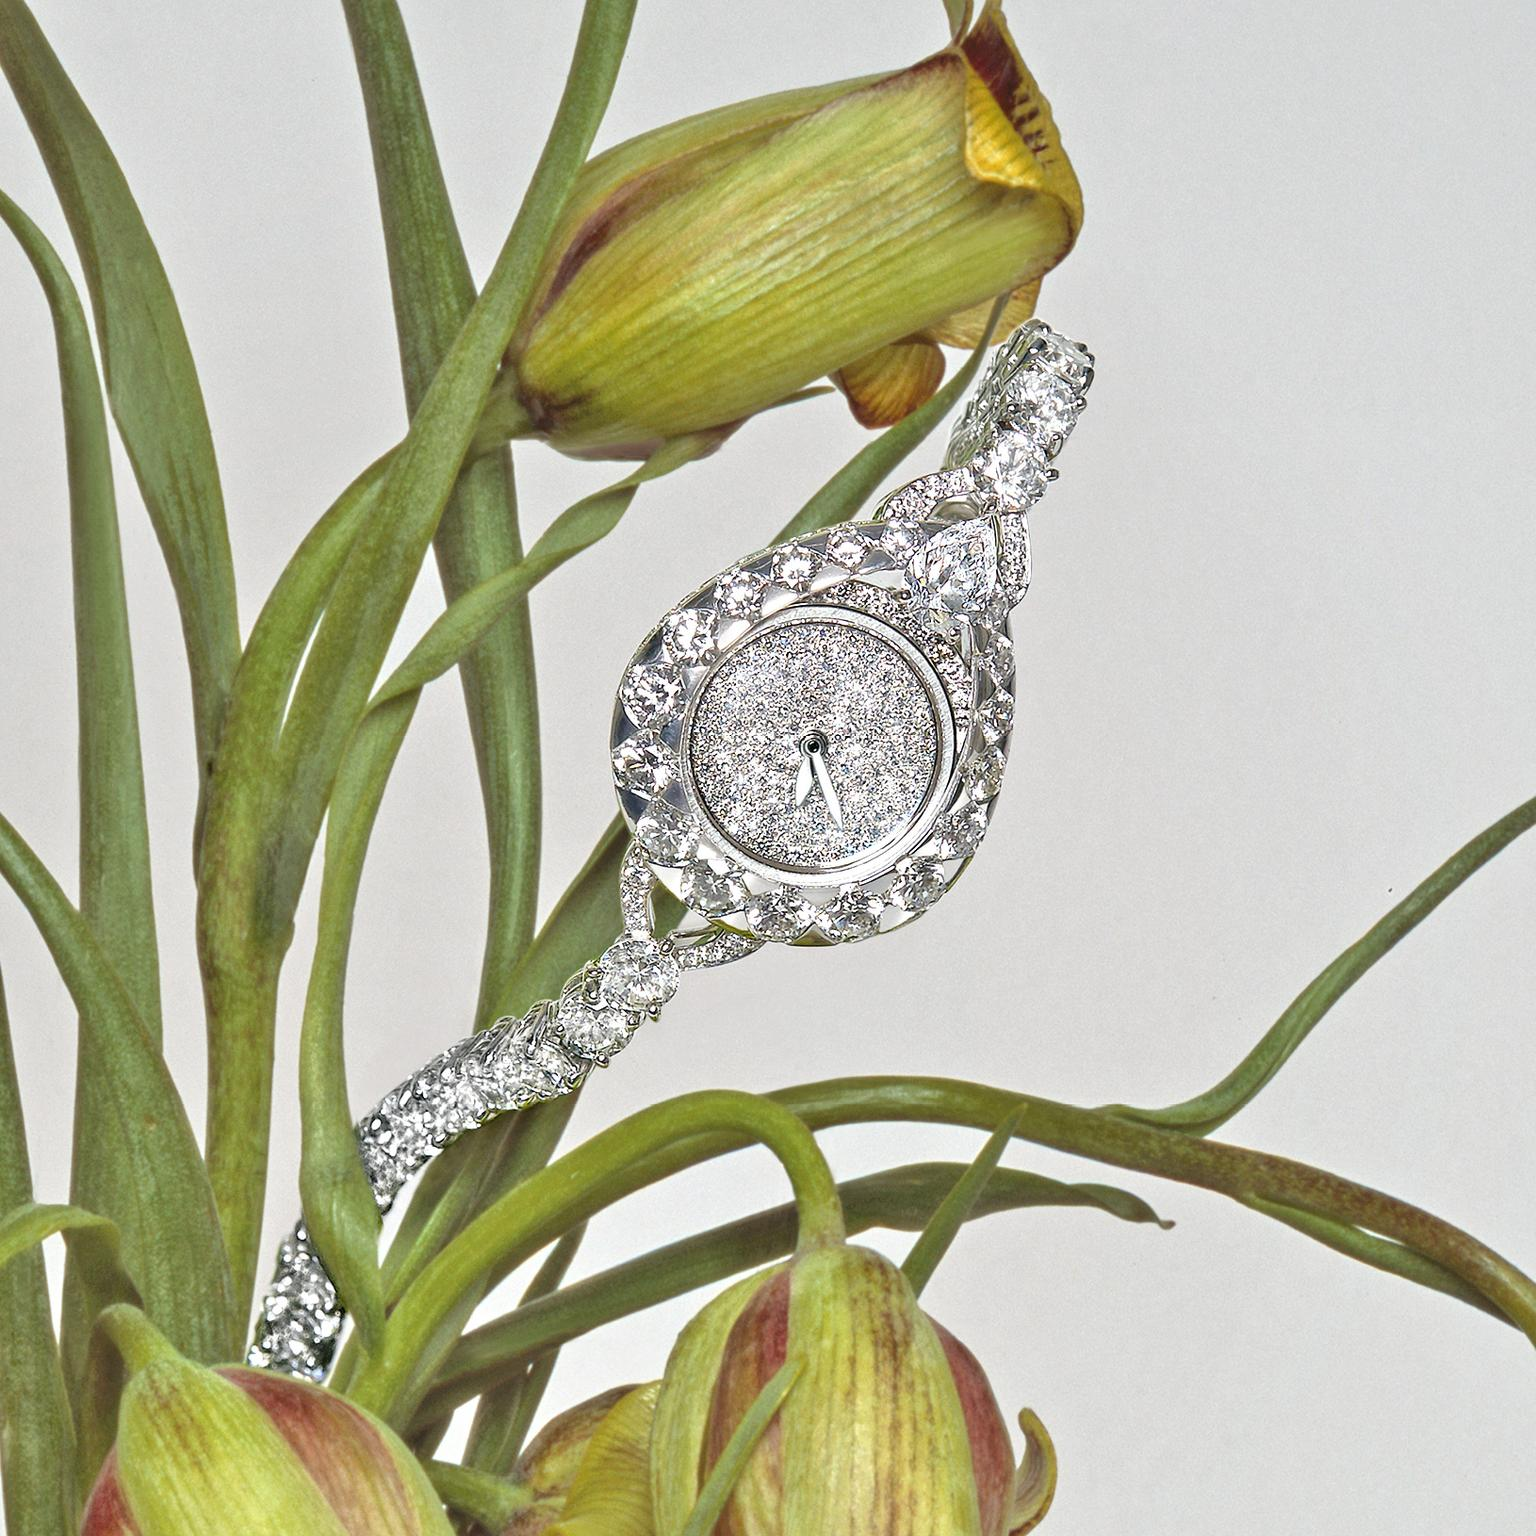 Chaumet Eclat Floral watch